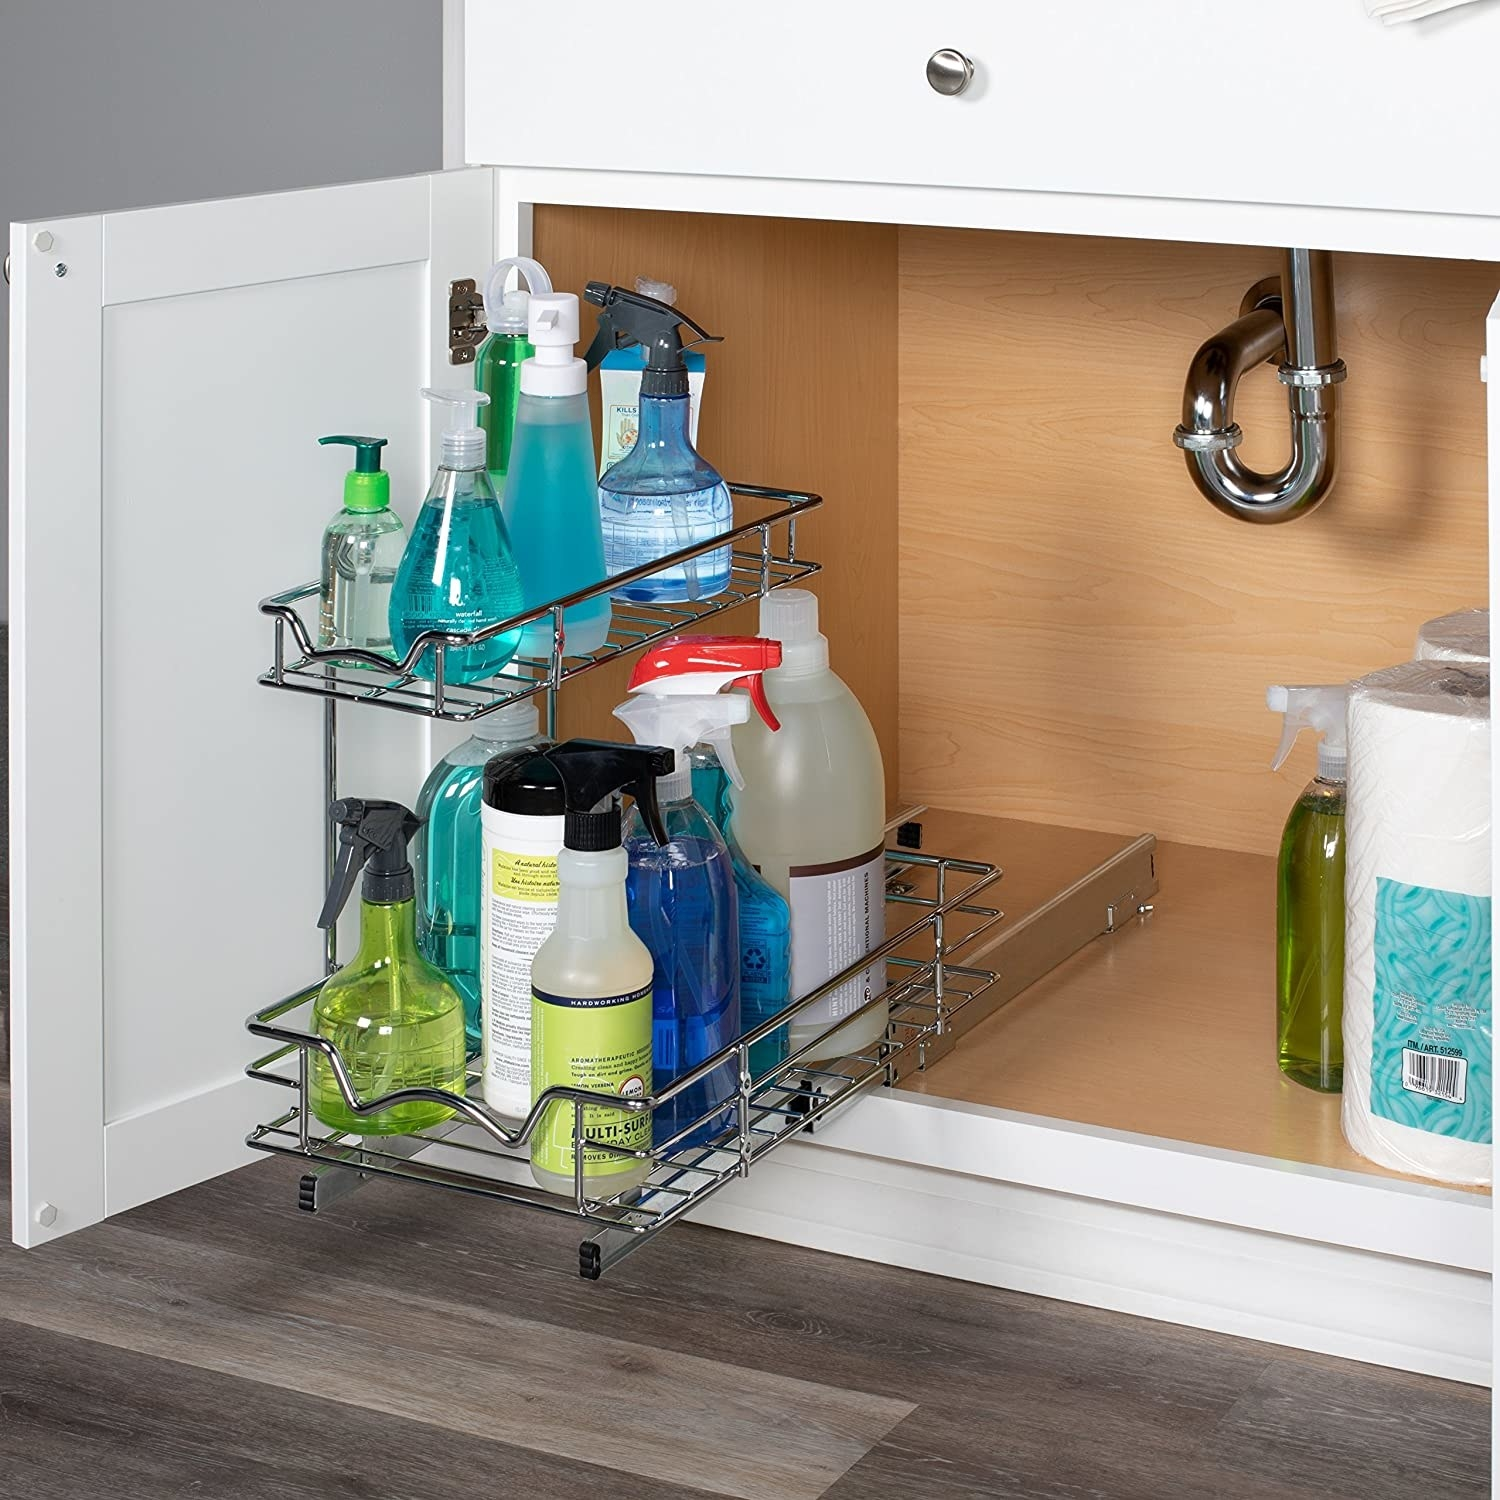 The cabinet organizer filled with cleaning supplies, pulled out from its stand